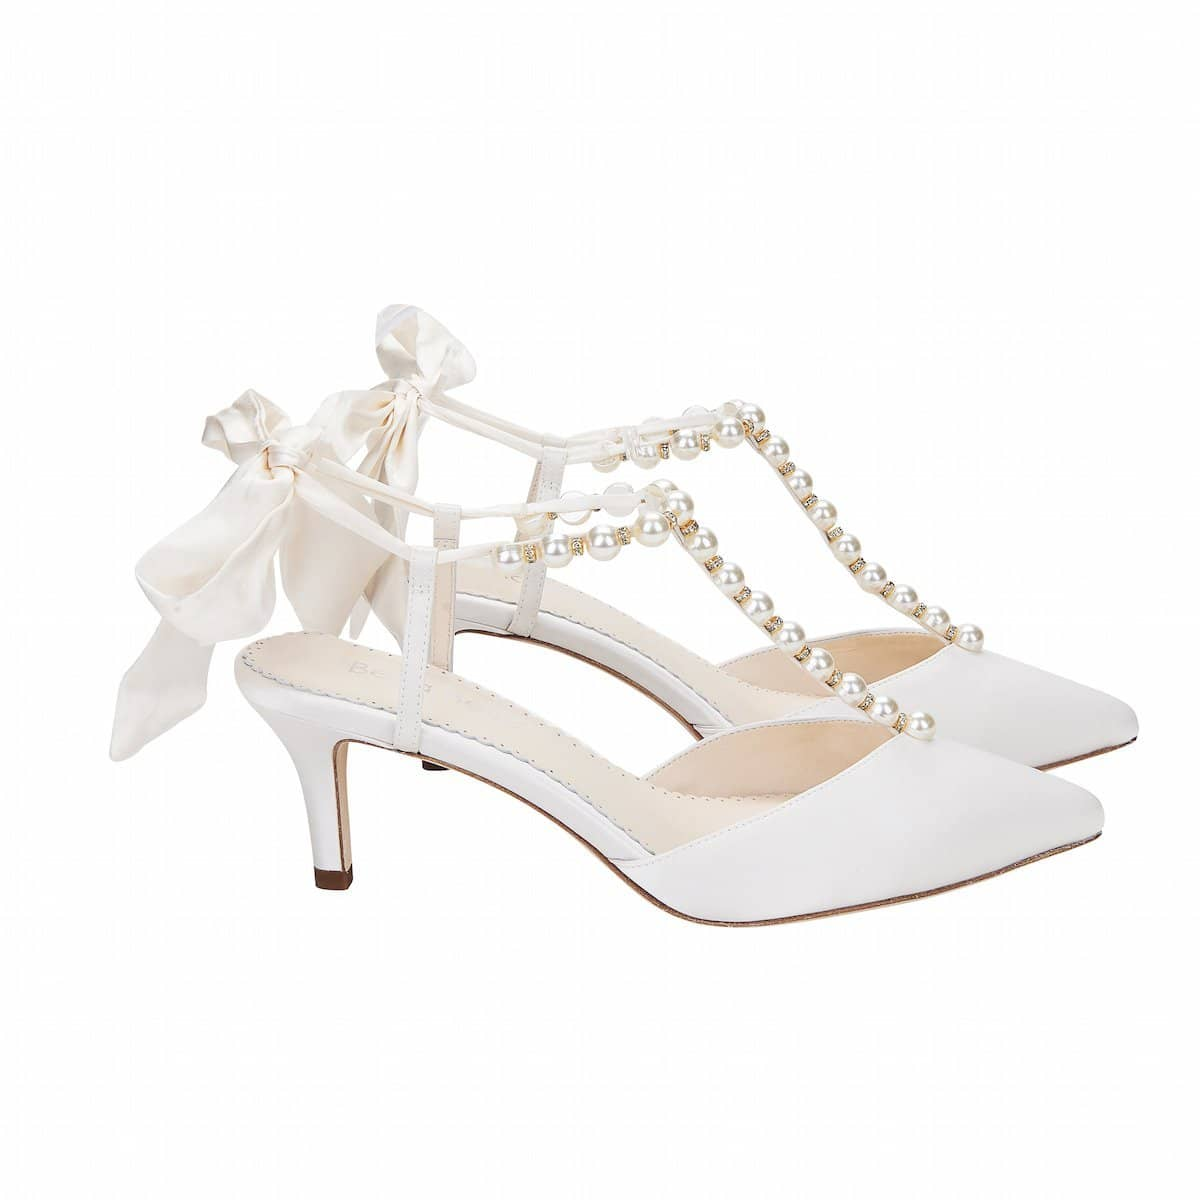 Lucia Ivory Pearl Bridal Shoes Mid Heel Wedding Shoes Bella Belle Shoes